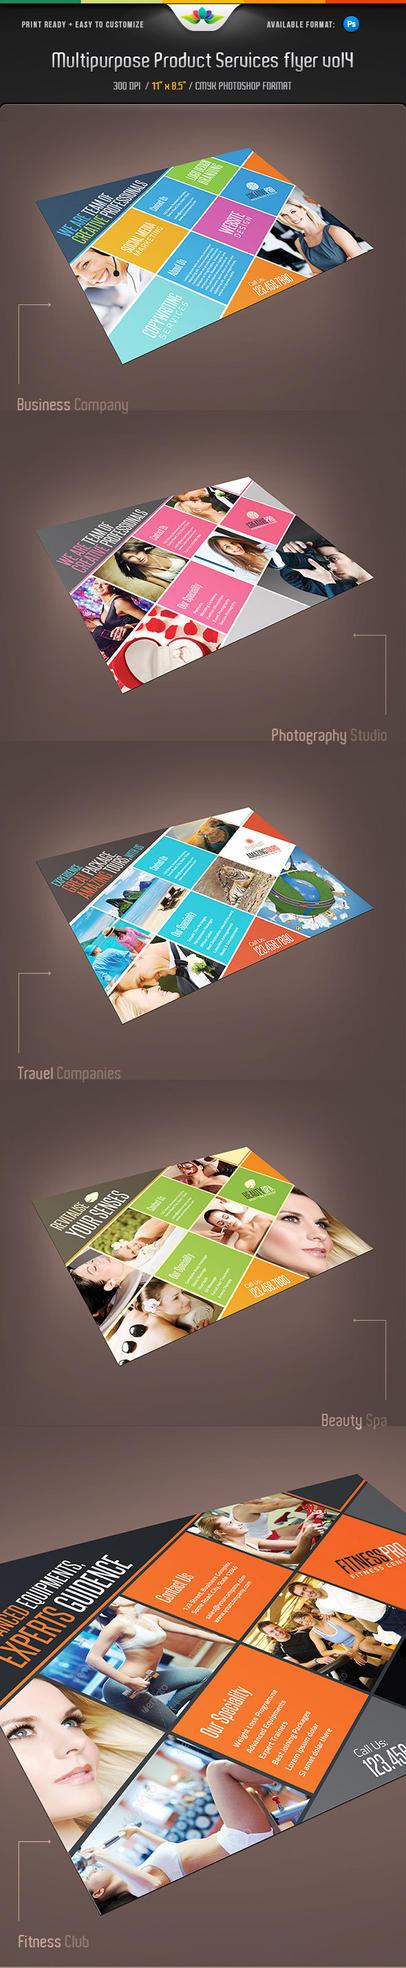 Multipurpose Product and Services Flyer Vol 4 by Saptarang